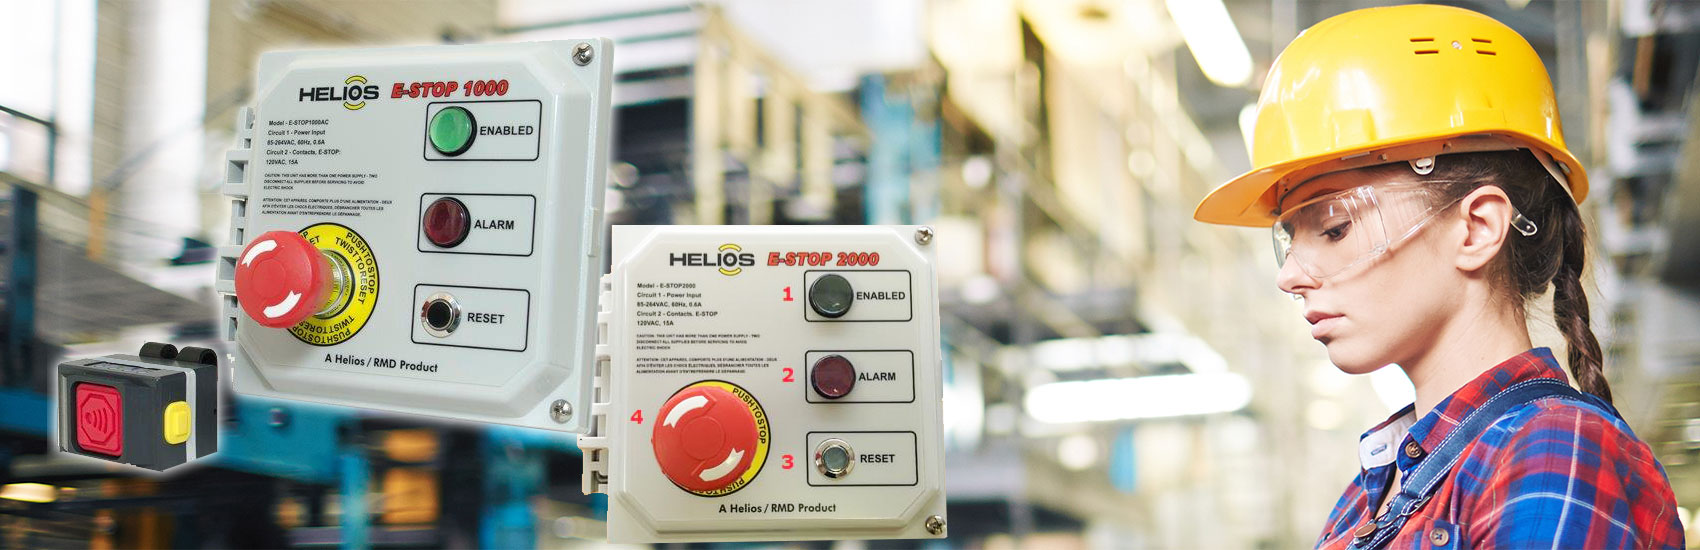 Help prevent injury or death through industrial accidents  - equip your employees with wireless emergency stop technology from Helios Global Technologies